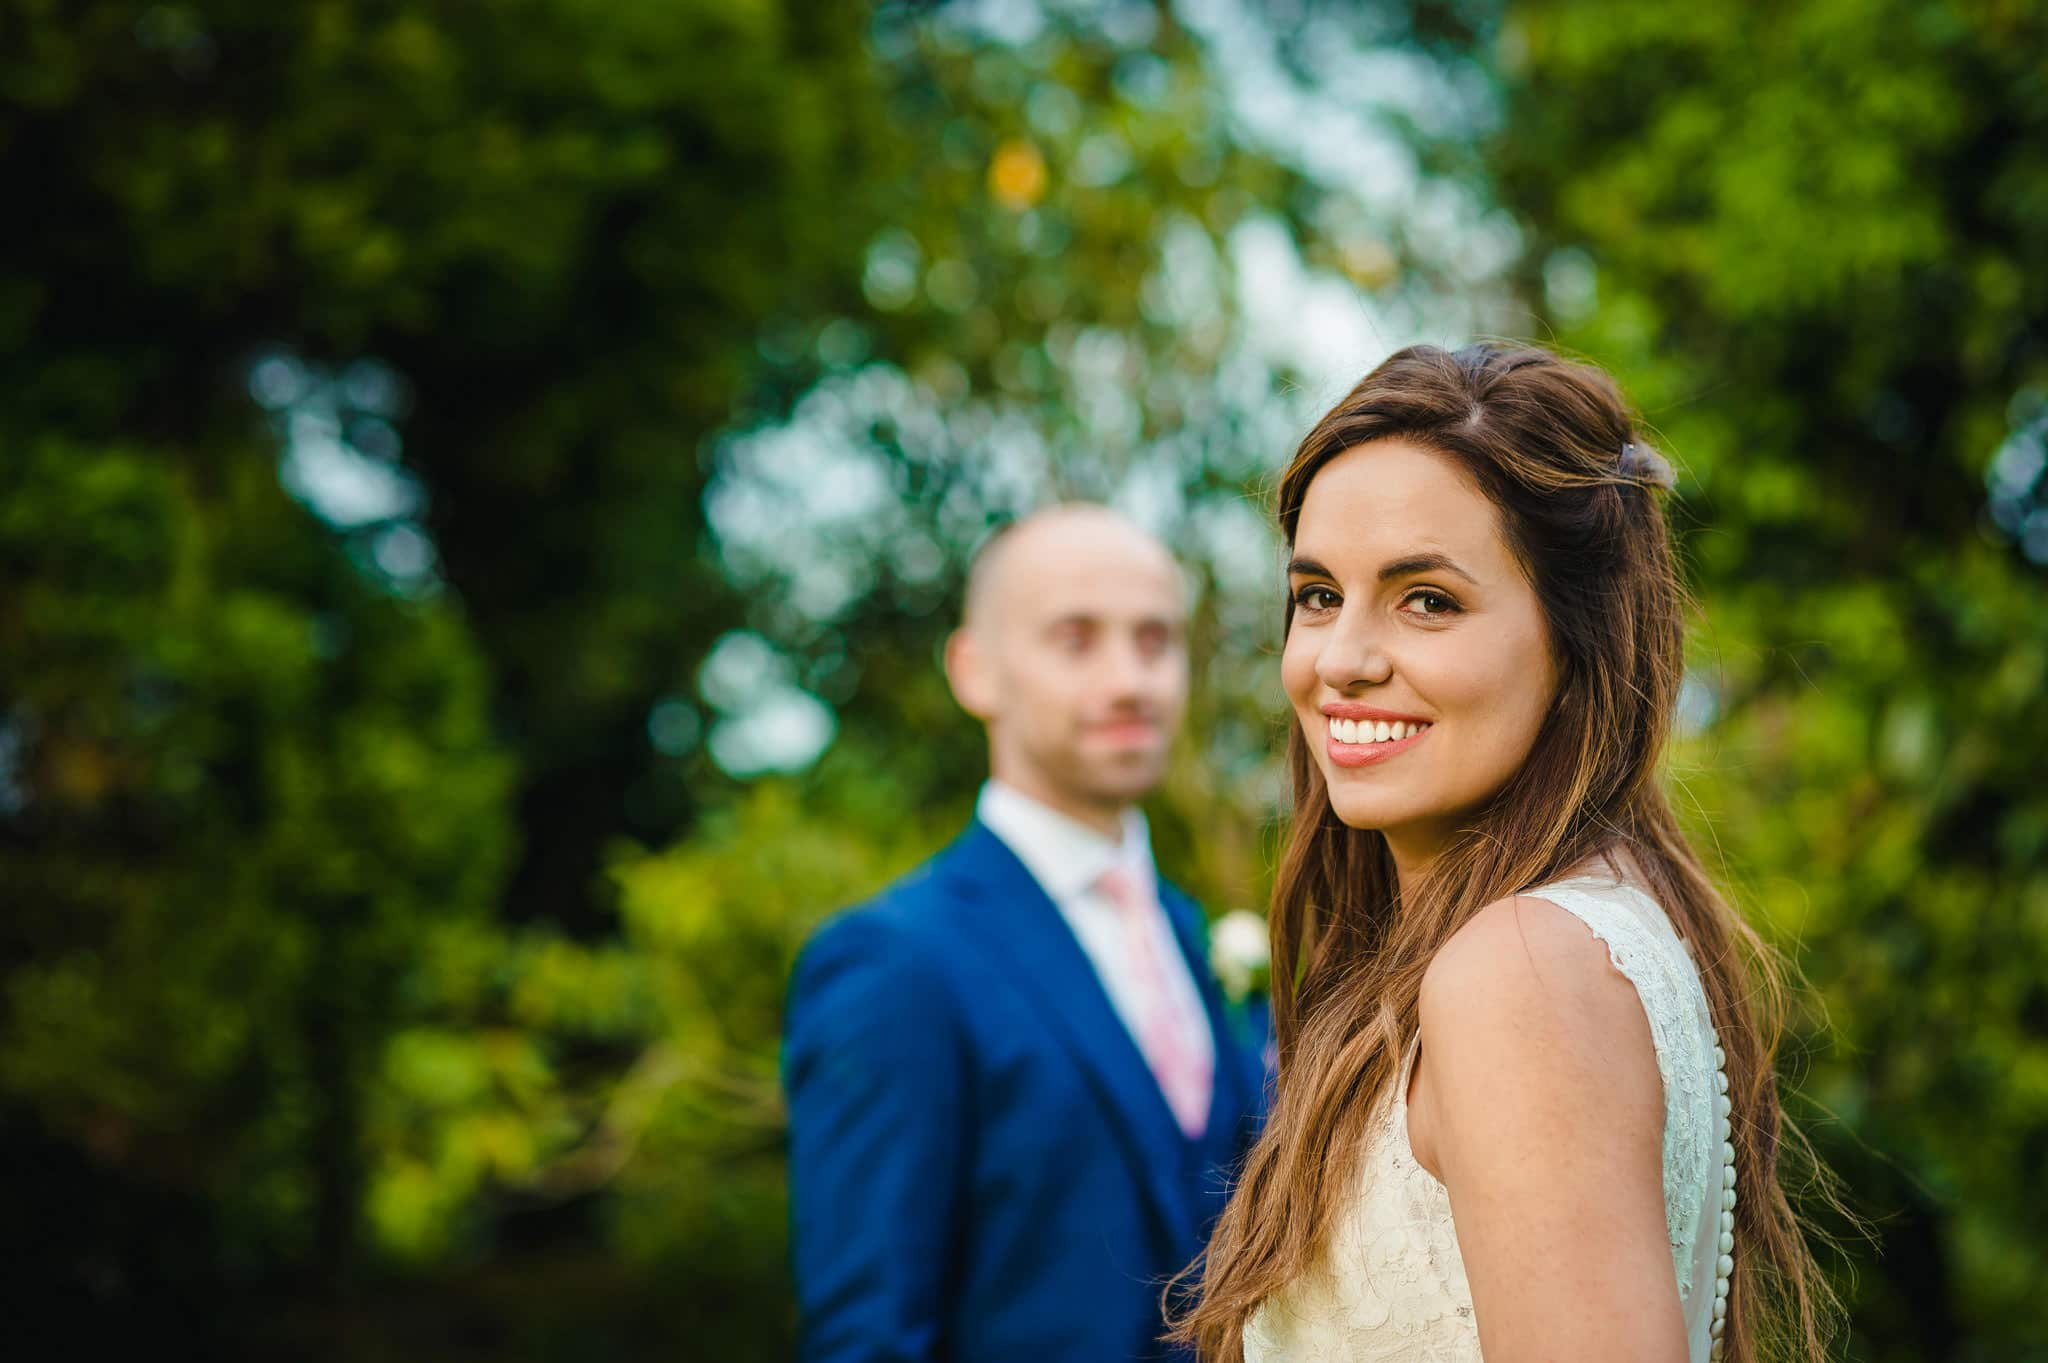 Wedding at Redhouse Barn in Stoke Prior, Worcestershire 182